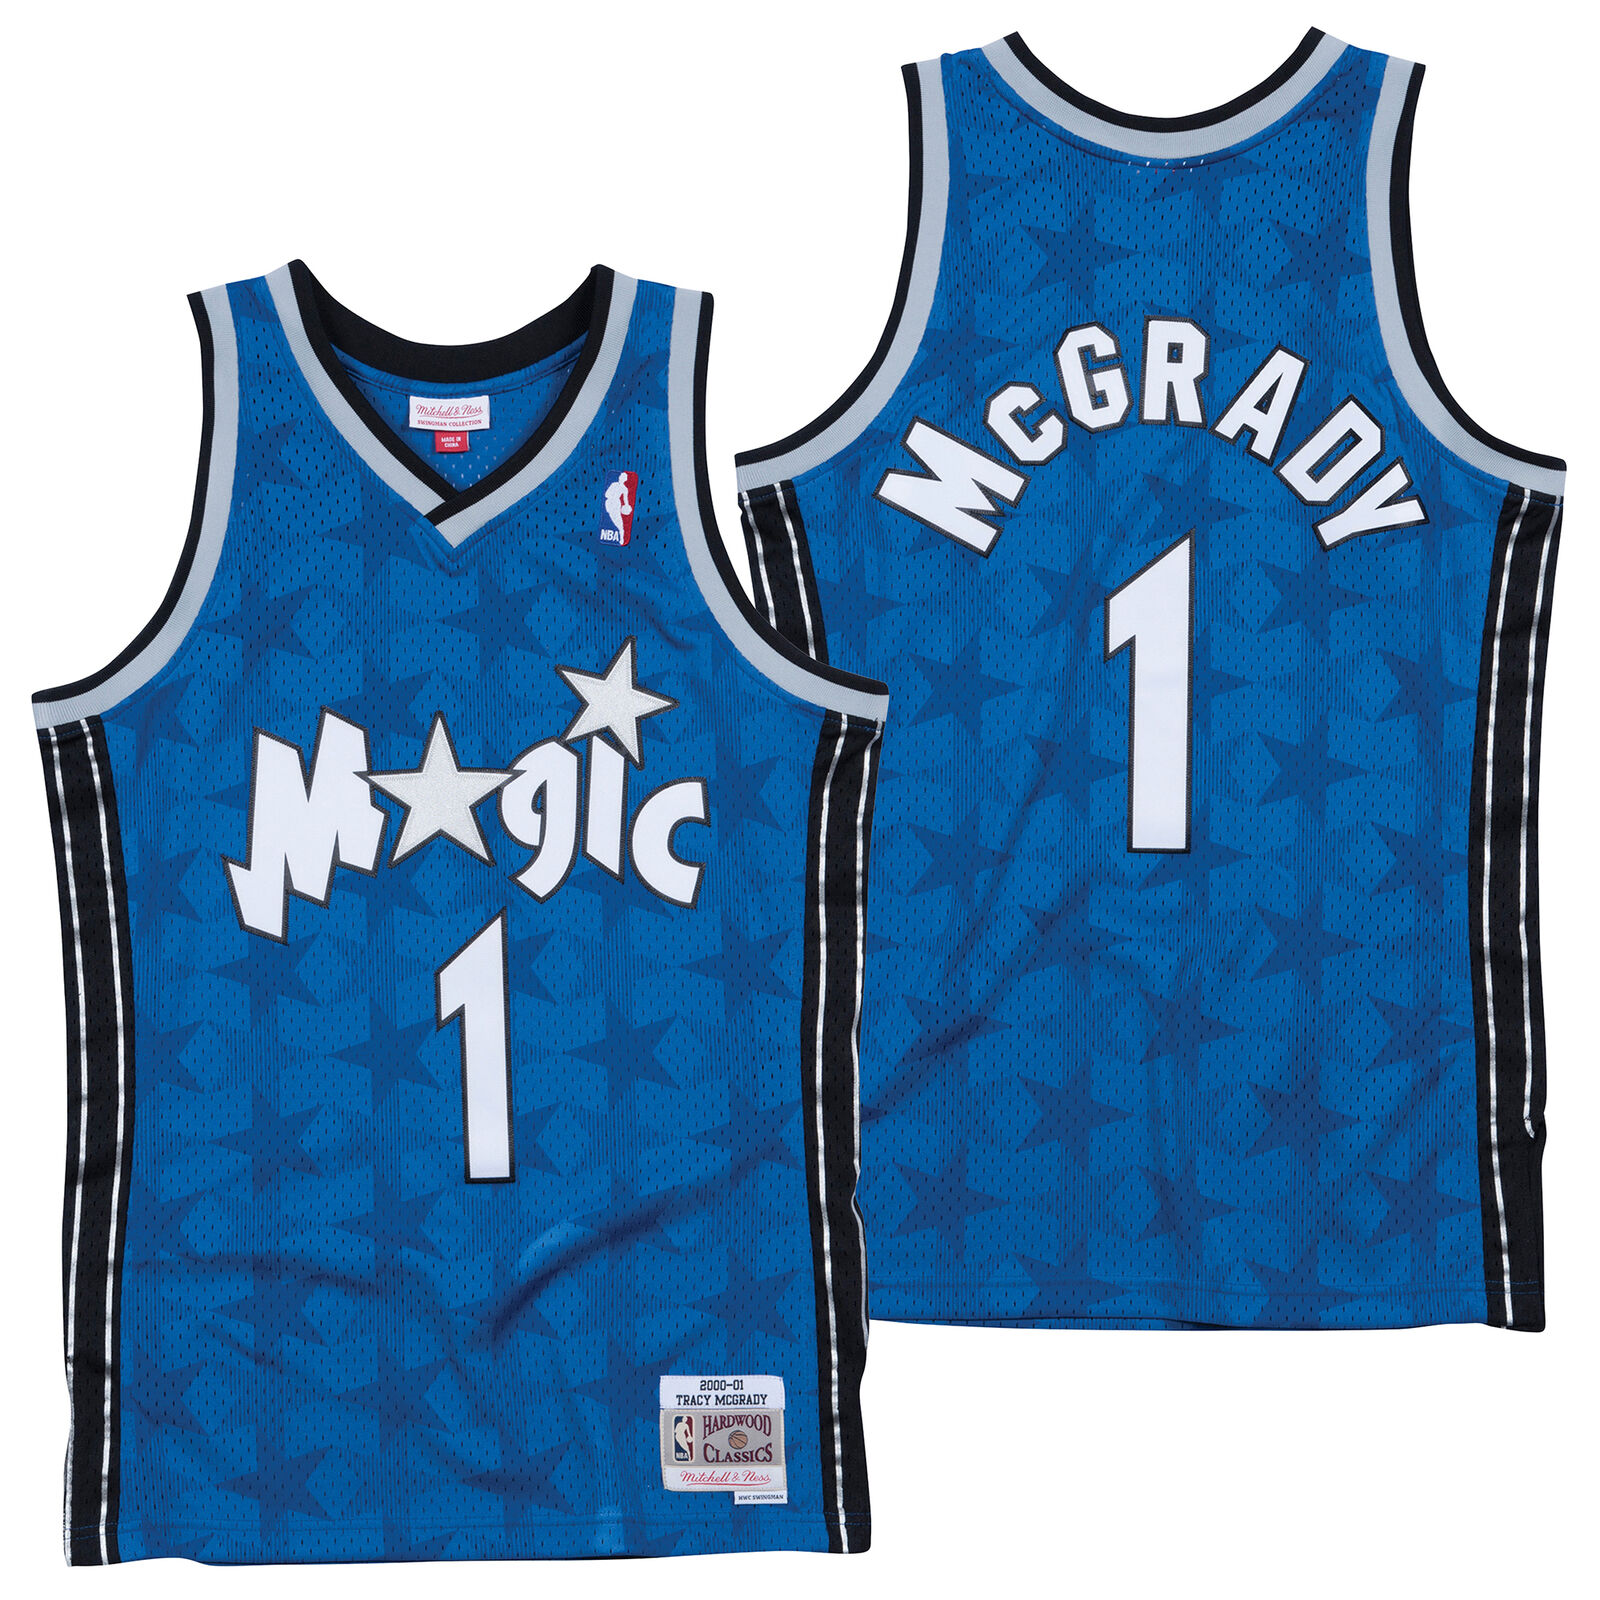 NBA Orlando Magic Tracy McGrady Hardwood Classics Basketball Trikot Shirt Herren